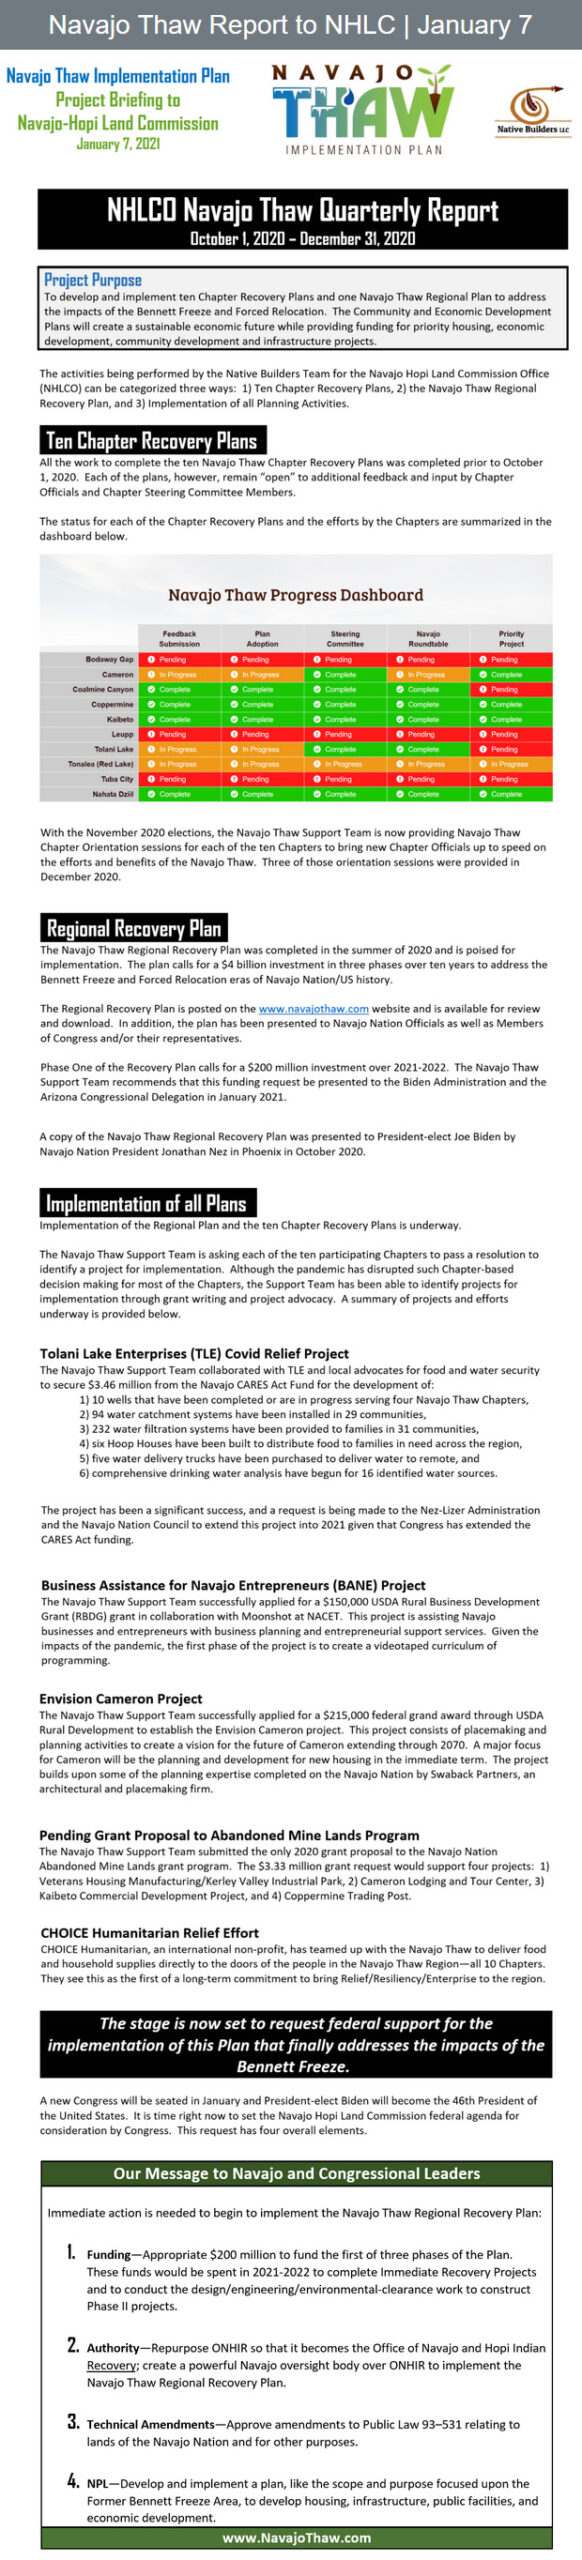 Navajo-Thaw-Report-to-NHLC-January-7-2021